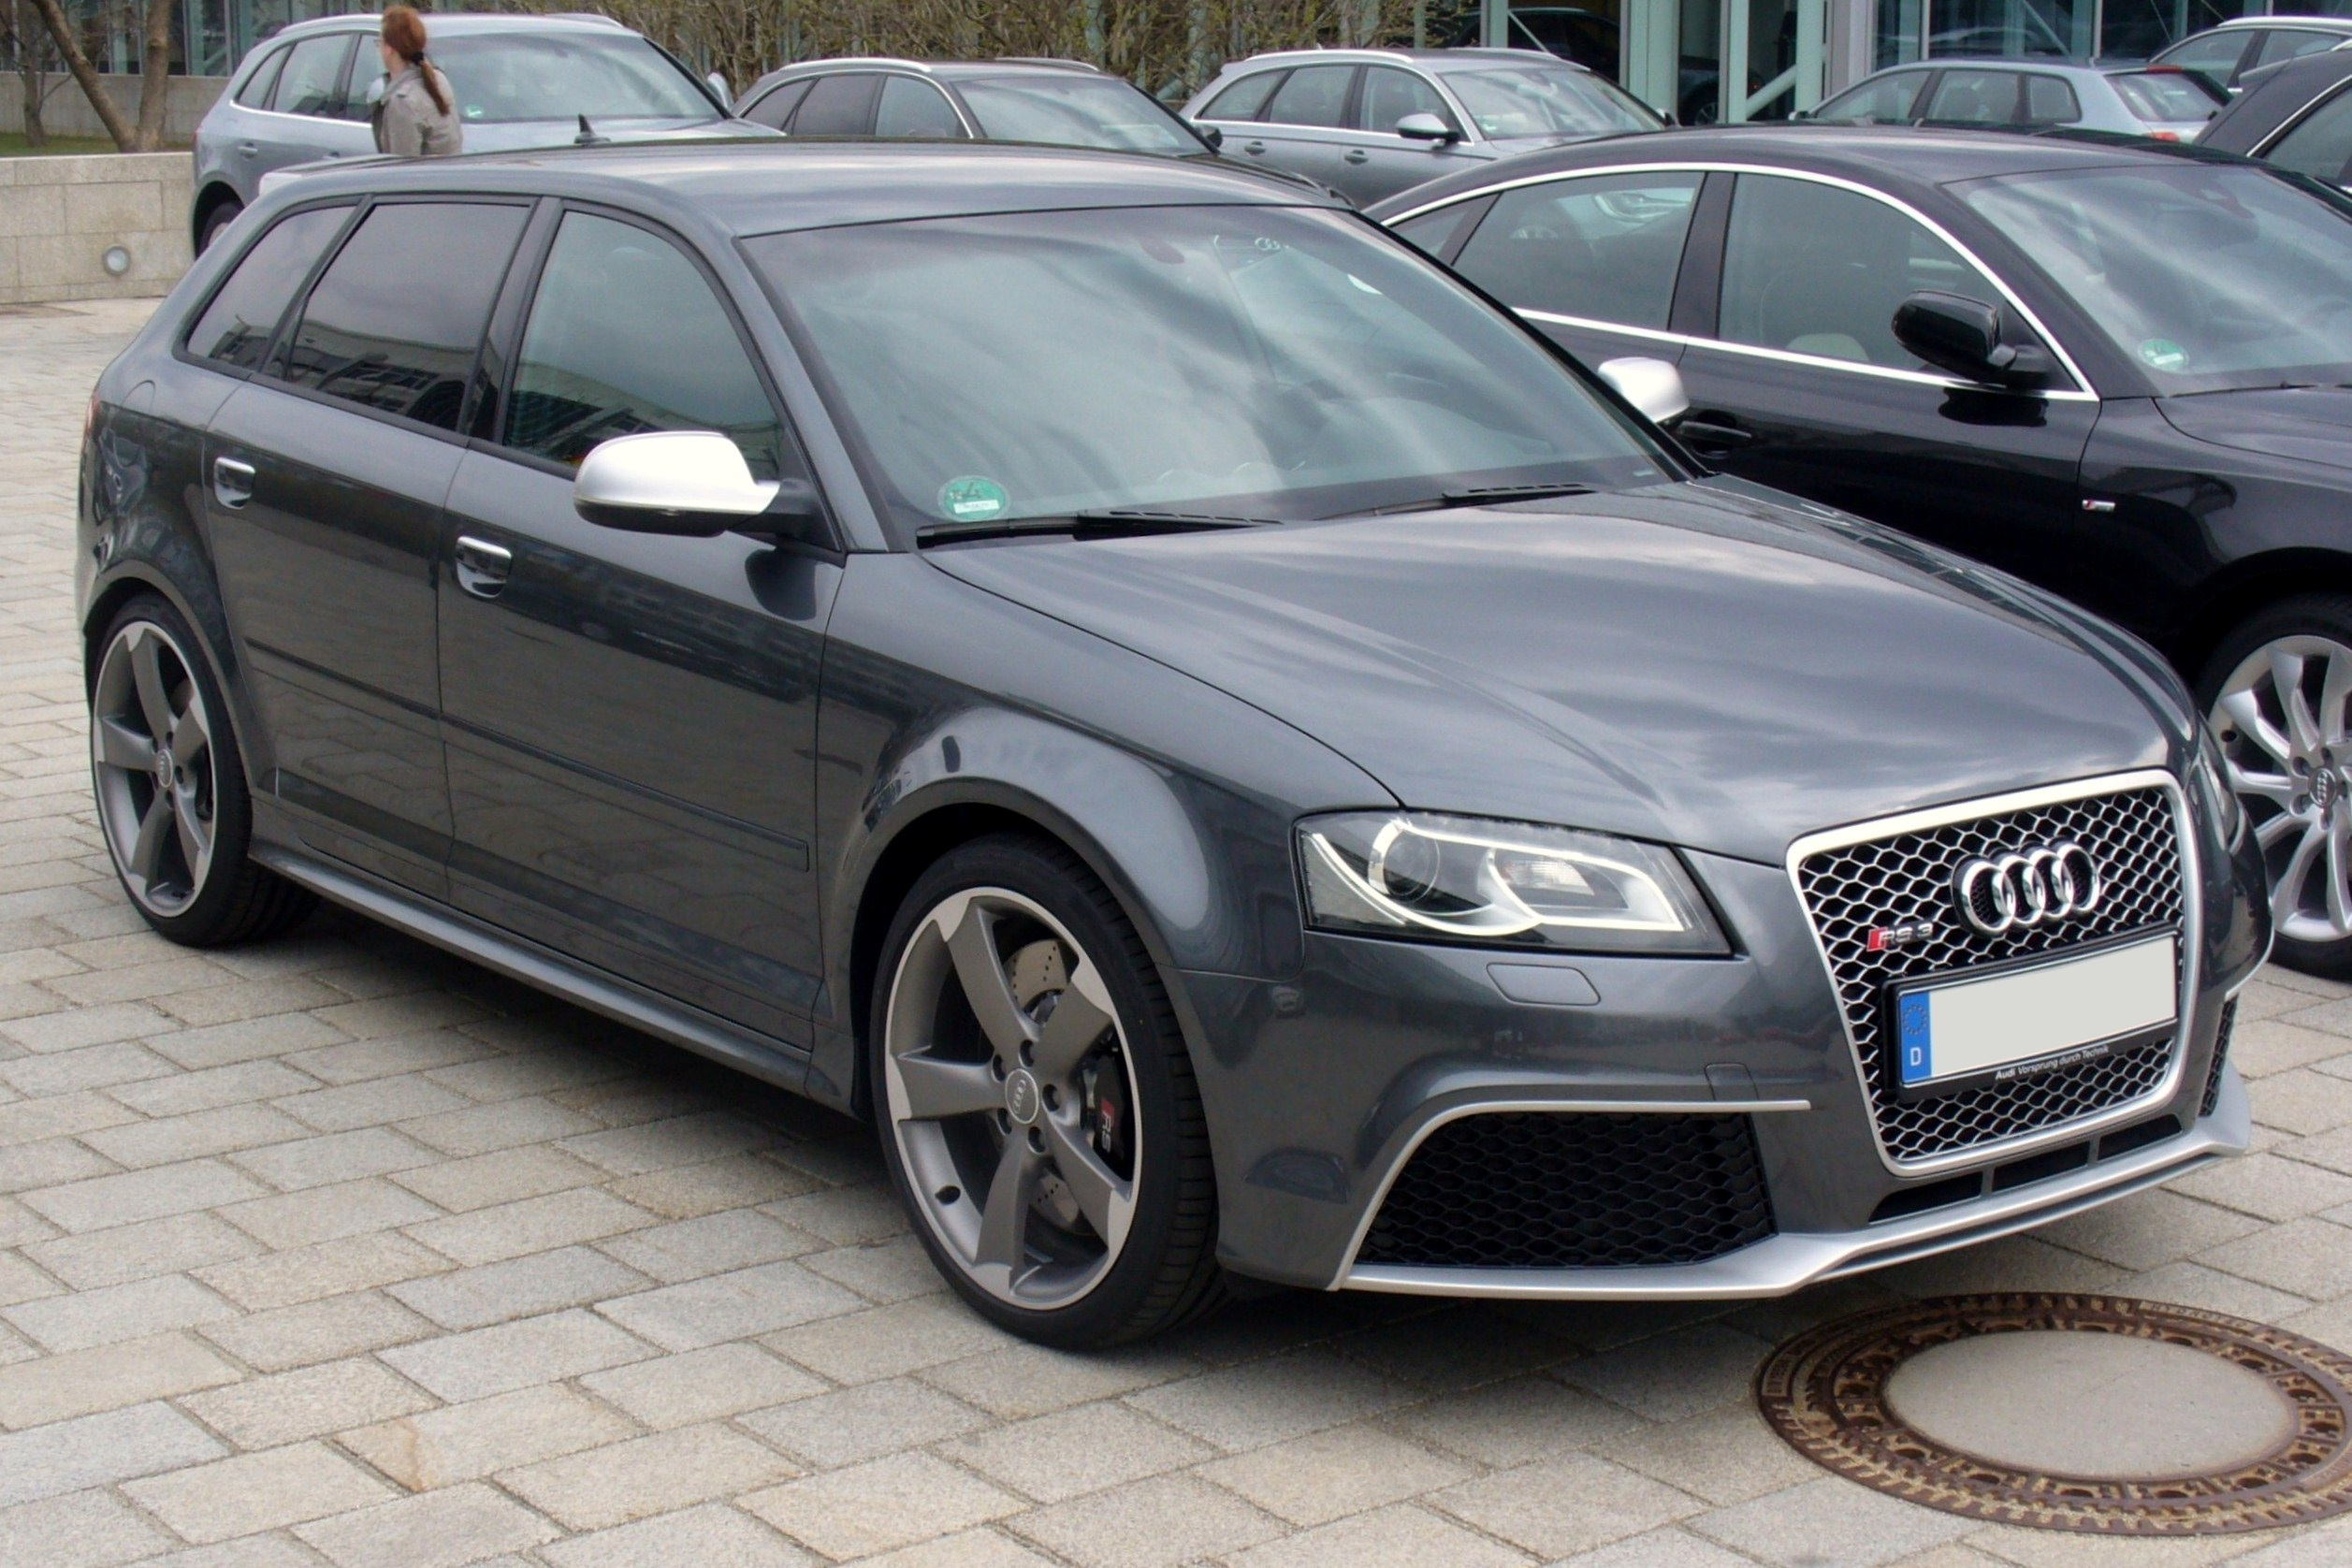 file audi rs3 sportback daytonagrau jpg wikimedia commons. Black Bedroom Furniture Sets. Home Design Ideas